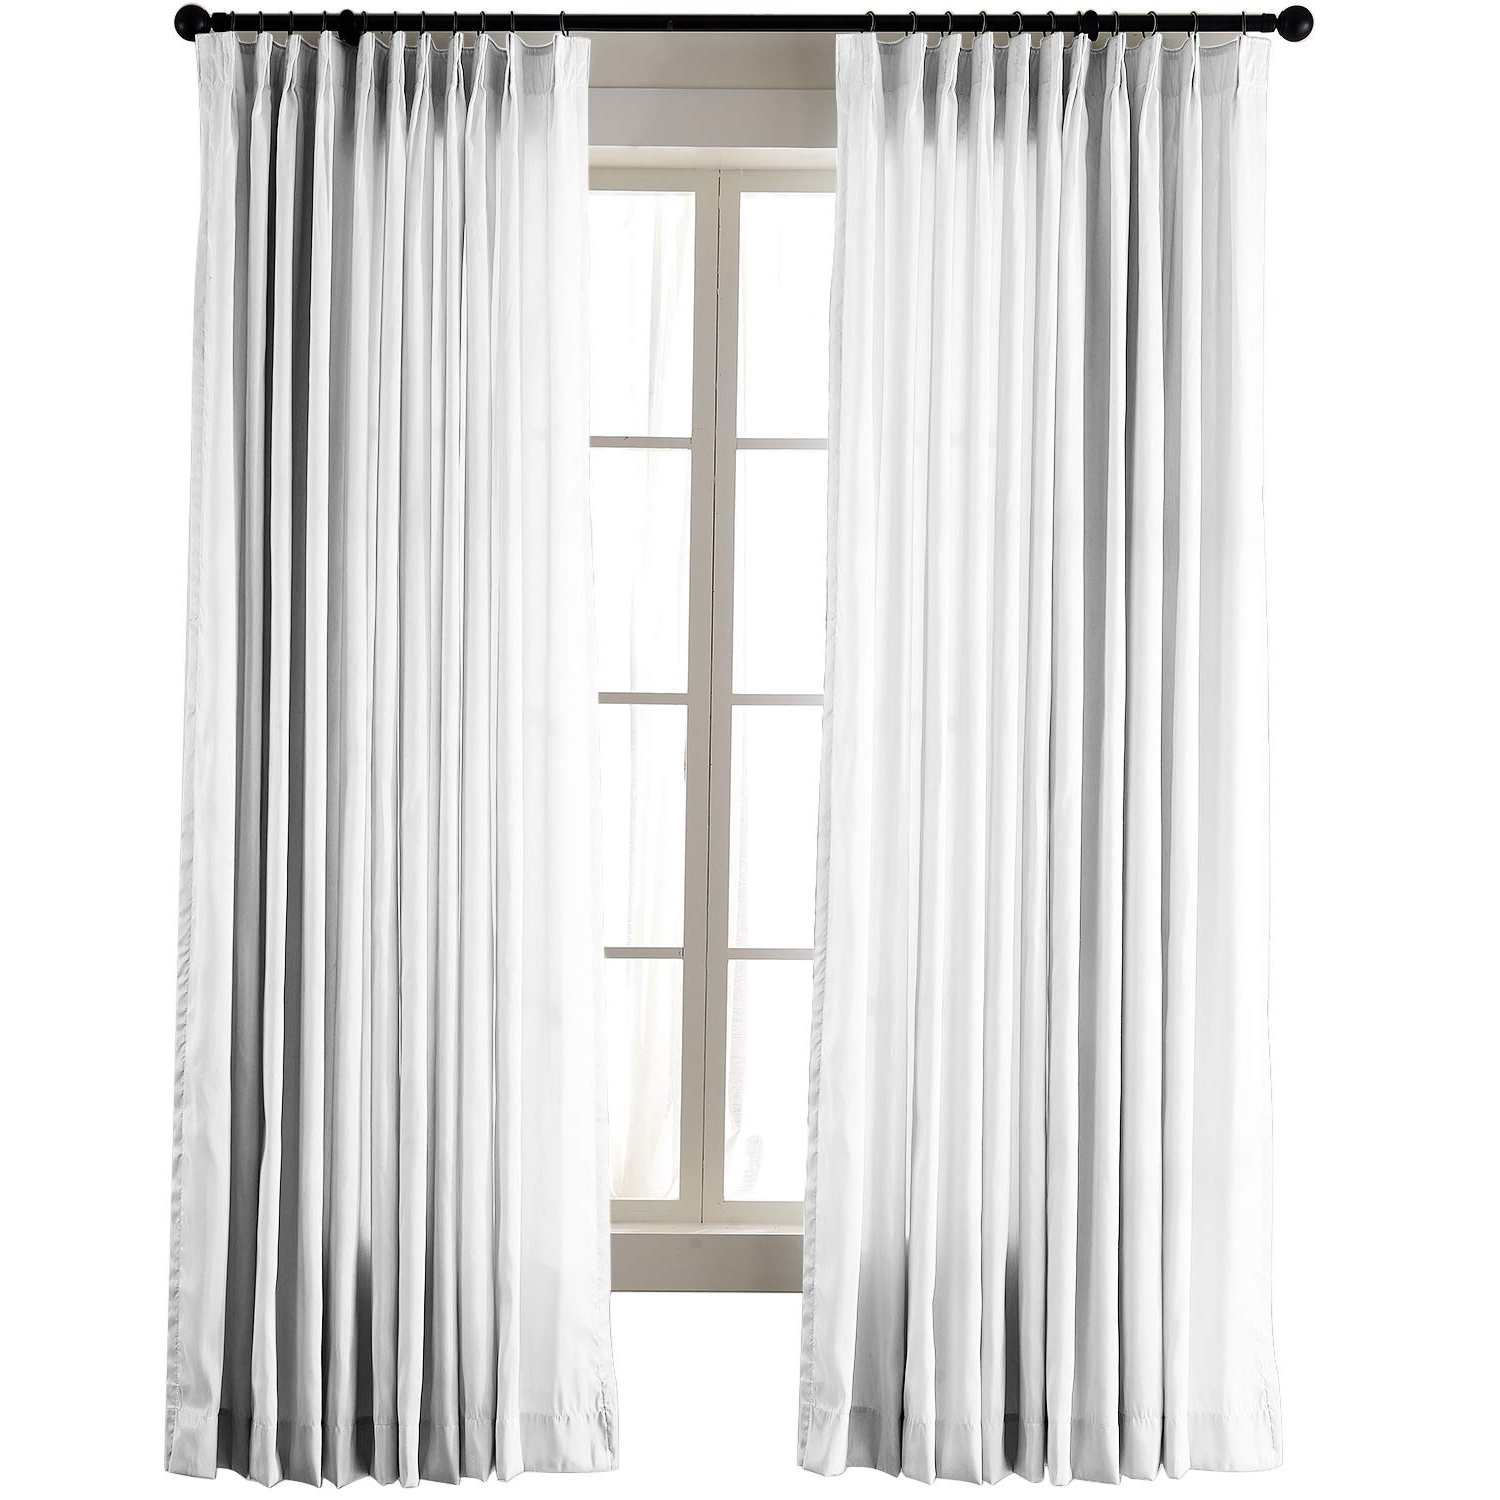 "Latest Vintage Textured Faux Dupioni Silk Curtain Panels With Regard To Chadmade Vintage Textured Faux Dupioni Silk Drape Curtain Panel Pinch Pleated 72"" W X 84"" L With White Blackout Lined, White Ivory (Gallery 1 of 20)"